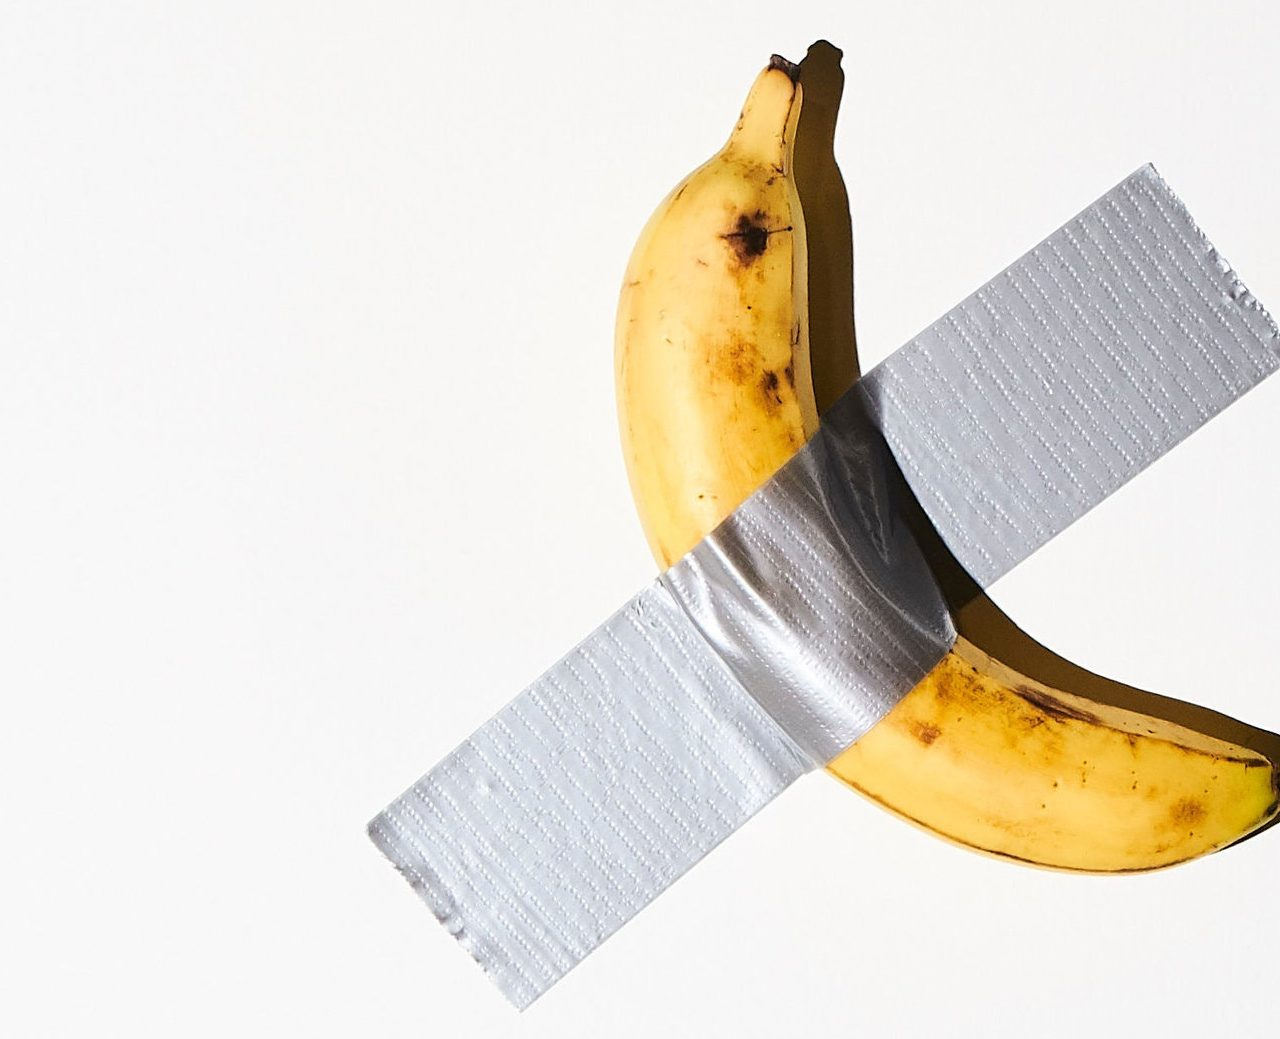 Banana Installation Worth $120,000 Eaten By Performance Artist